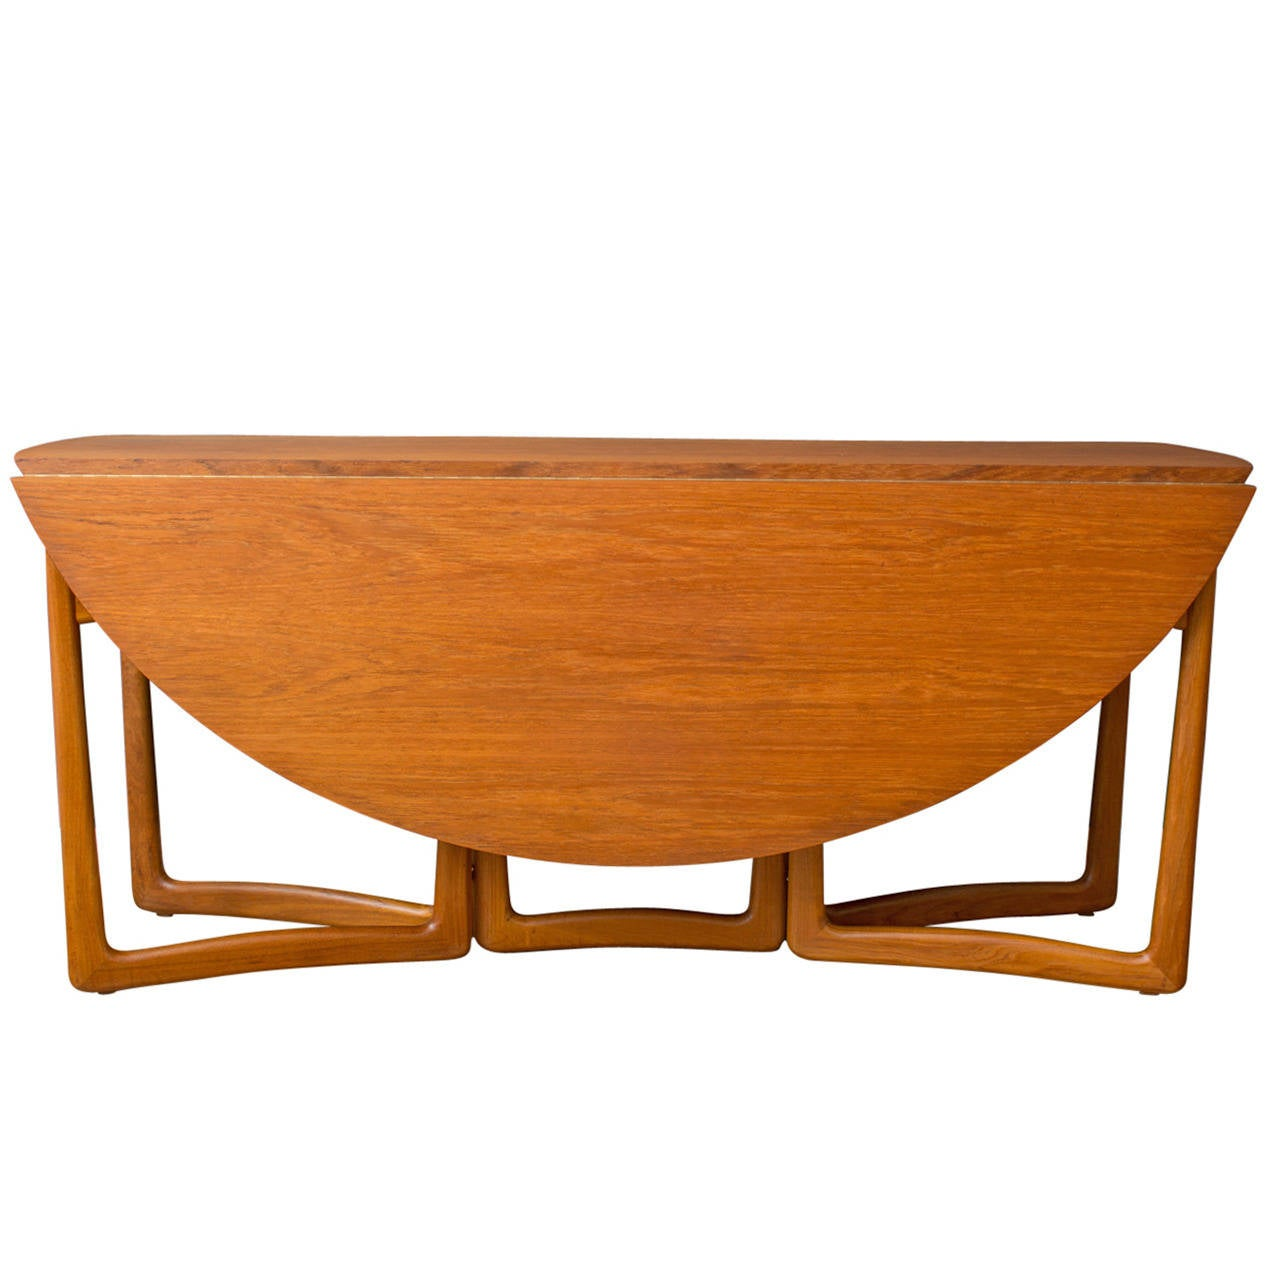 Danish Modern Drop Leaf Dining Table By Peter Hvidt And